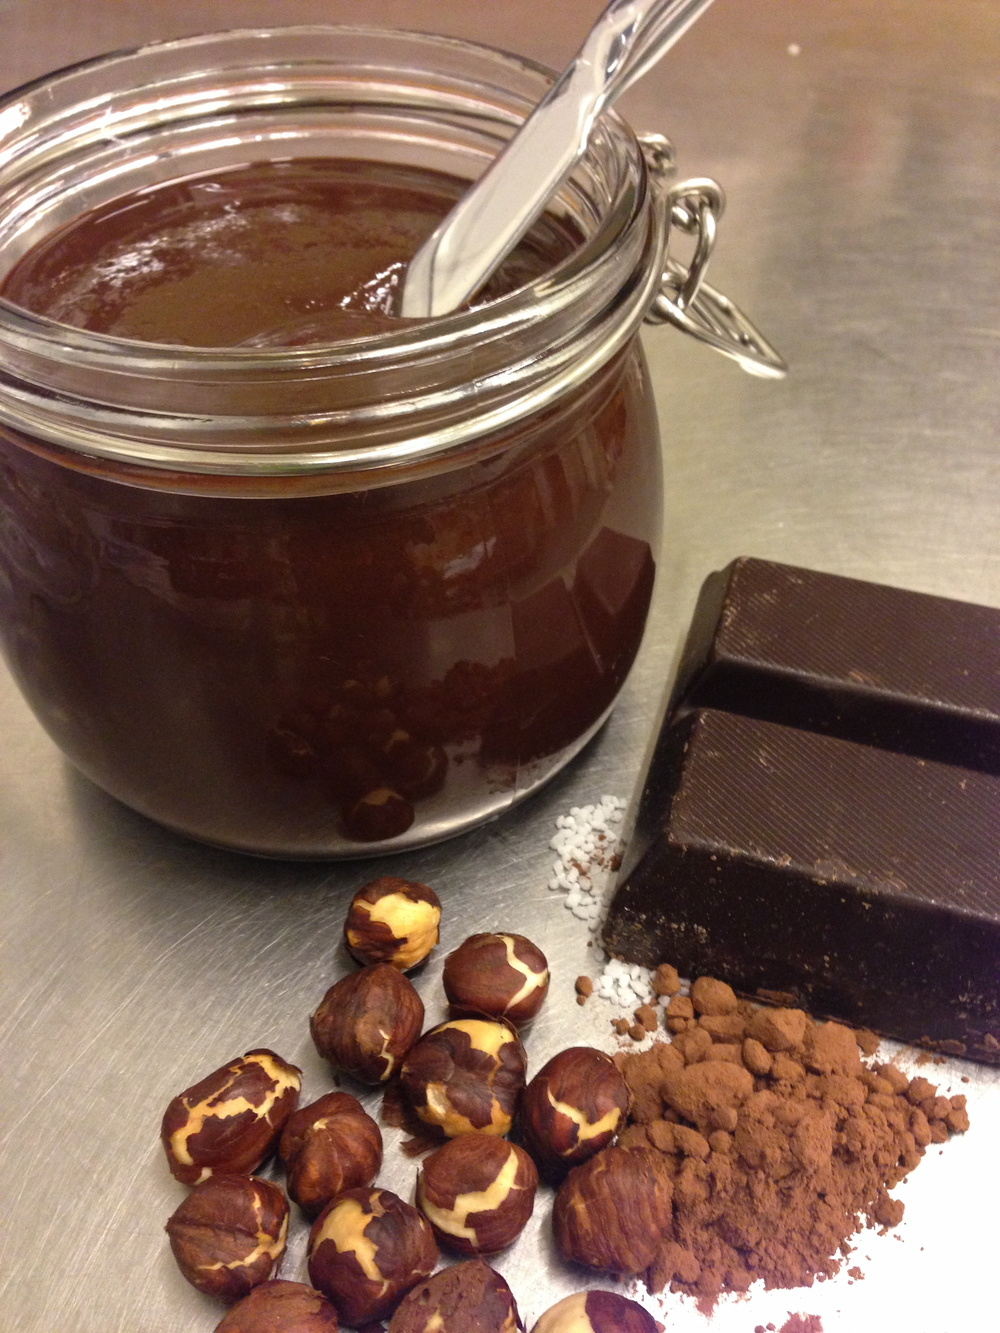 Chocolate hazelnutbutter